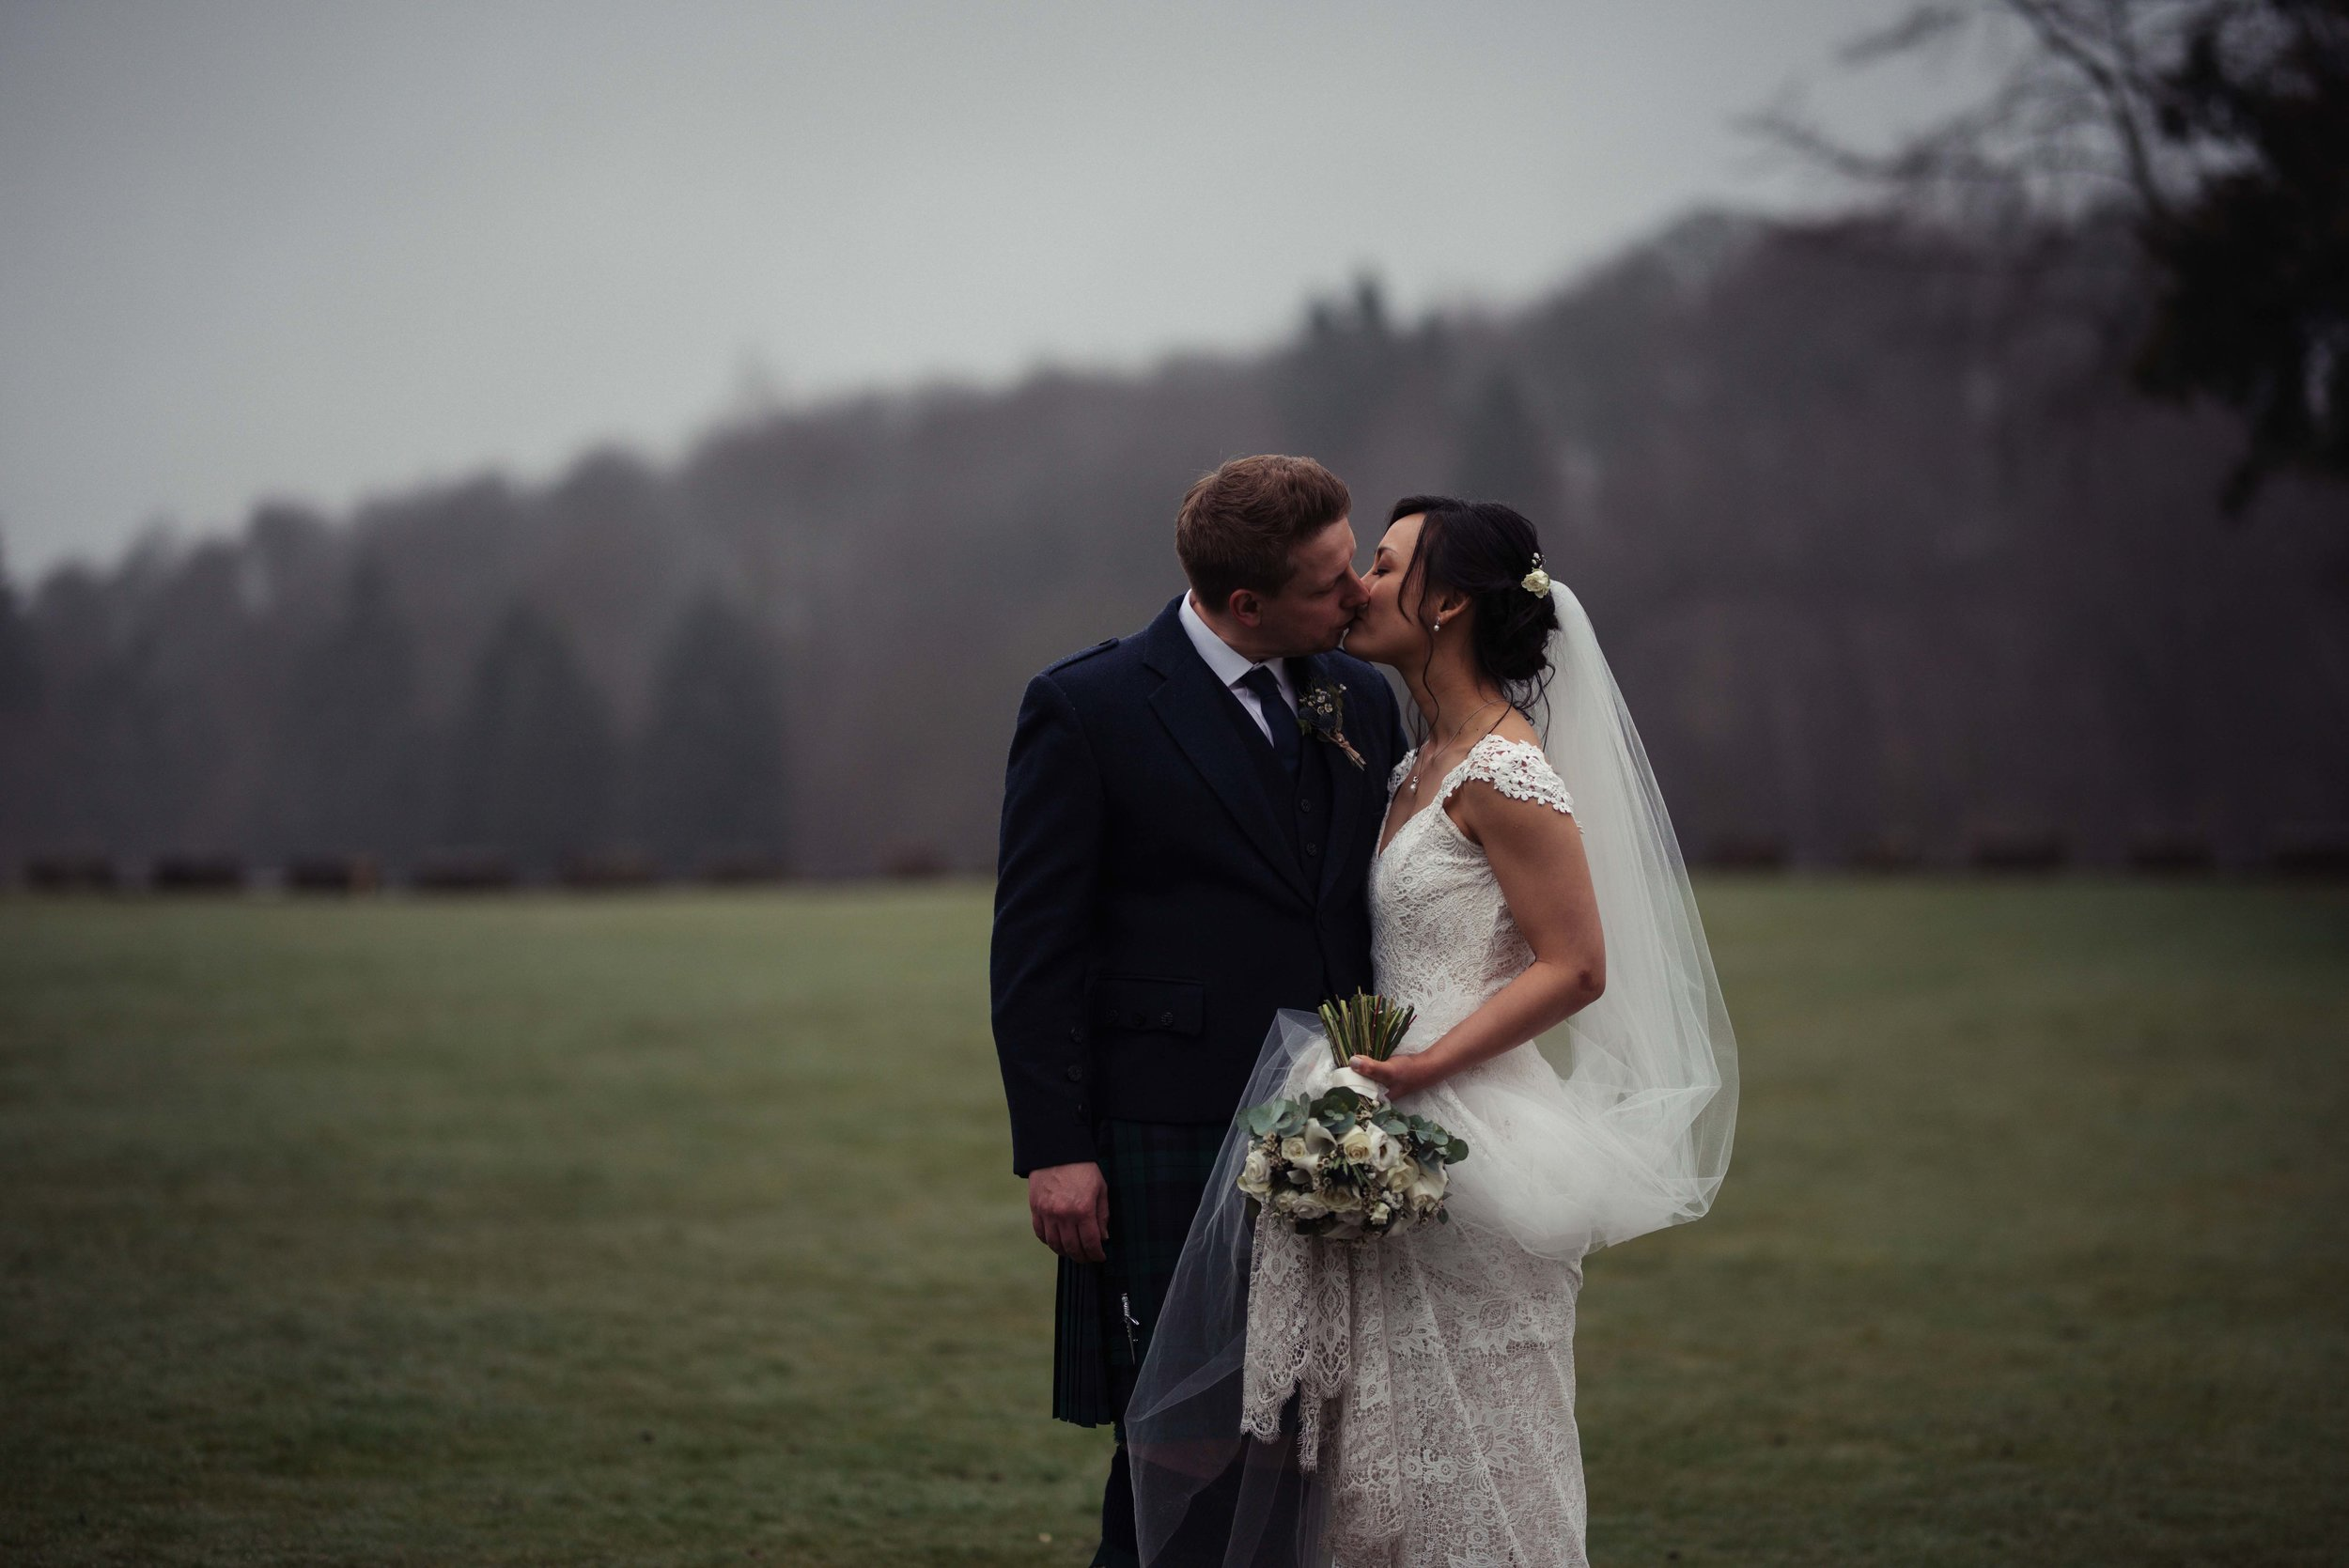 The bride and groom share a kiss together during their wedding photography